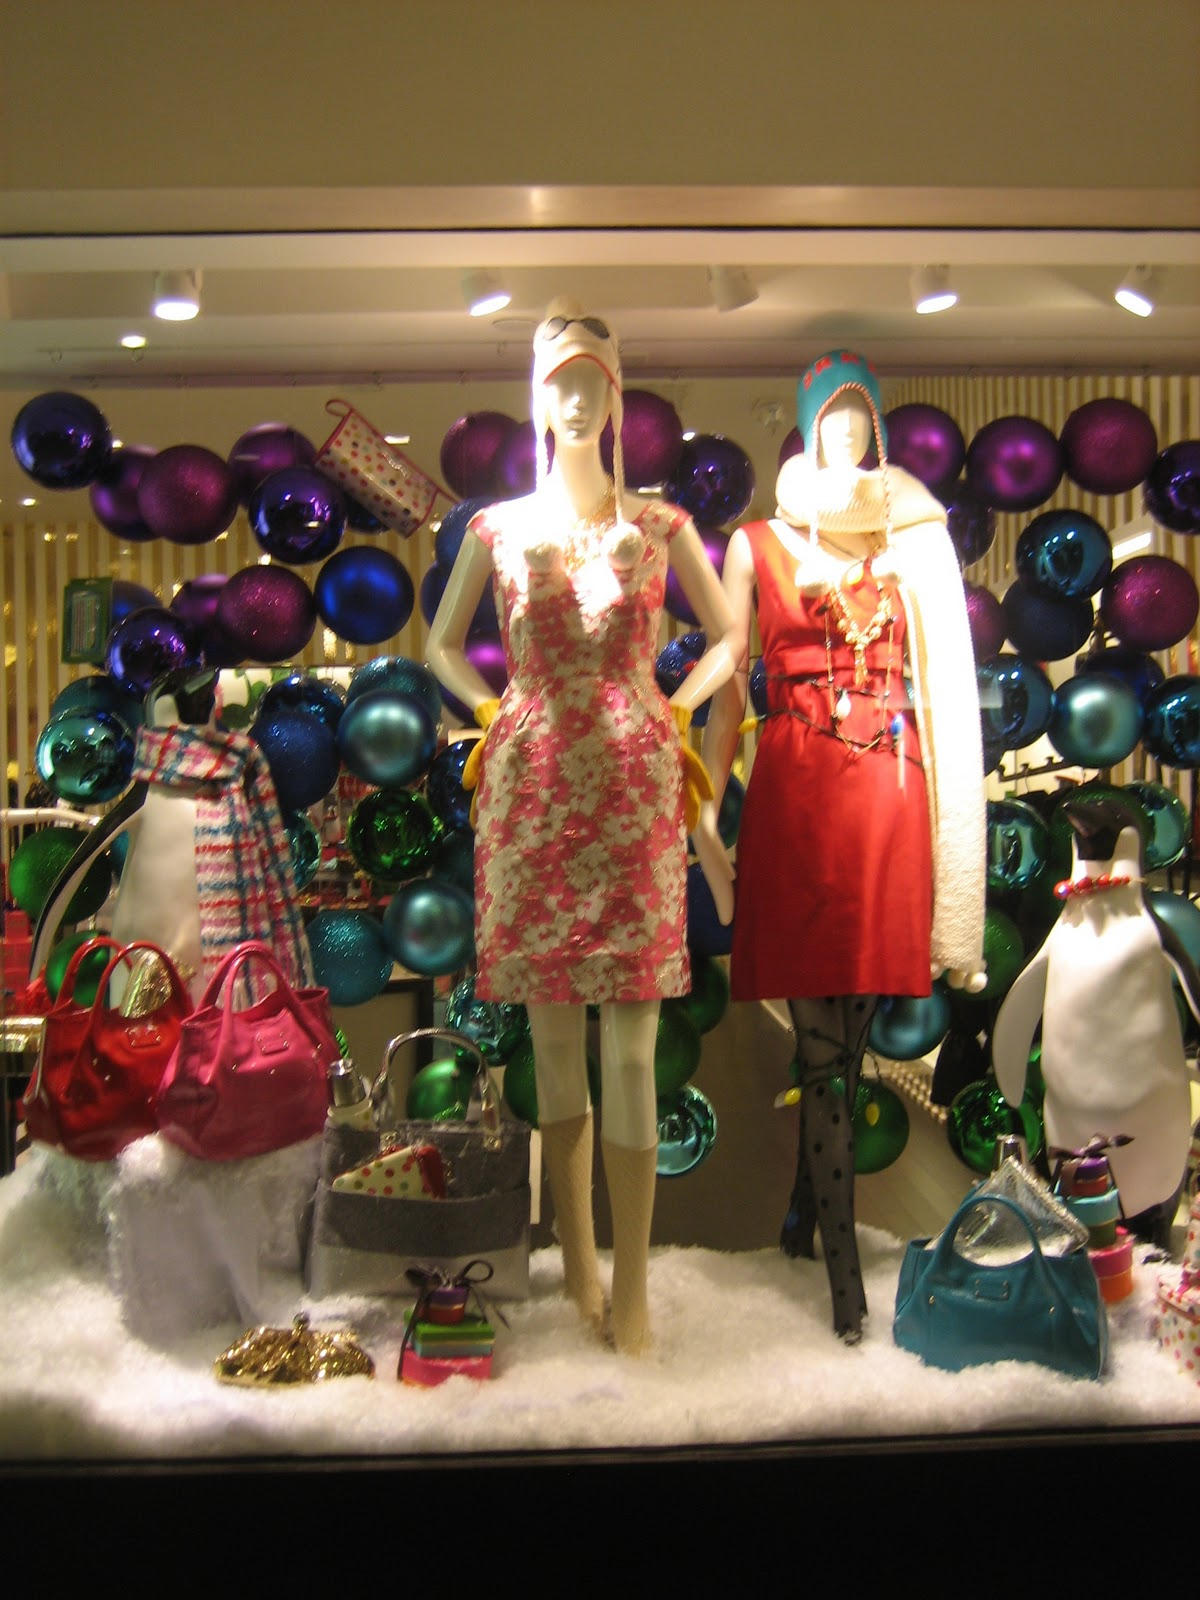 Turn Up The Rad Blog: Christmas inspiration: Kate Spade